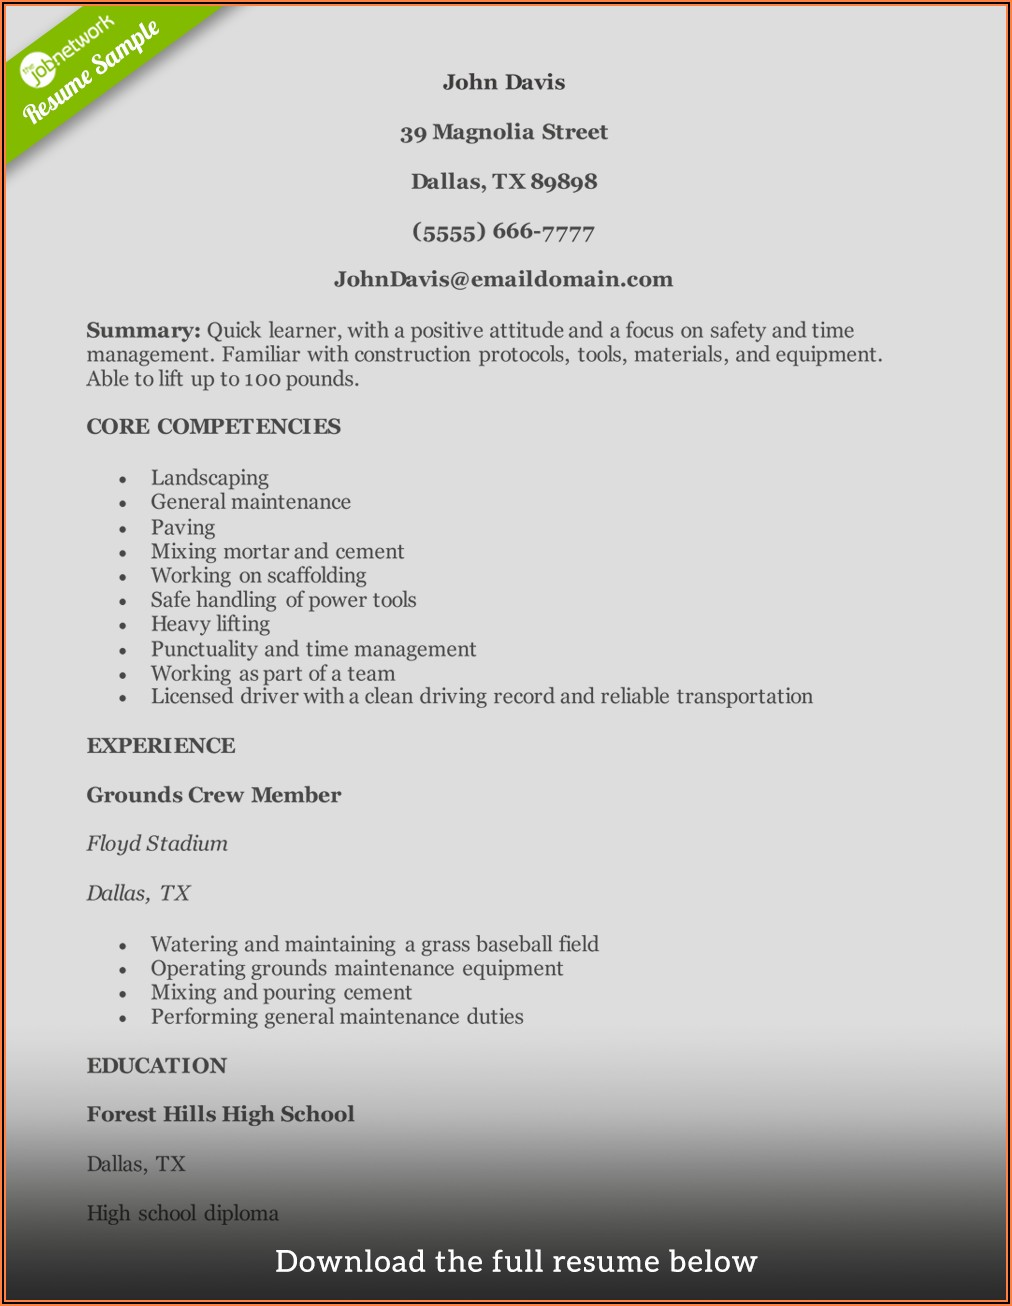 Free Resume Writing Services Perth